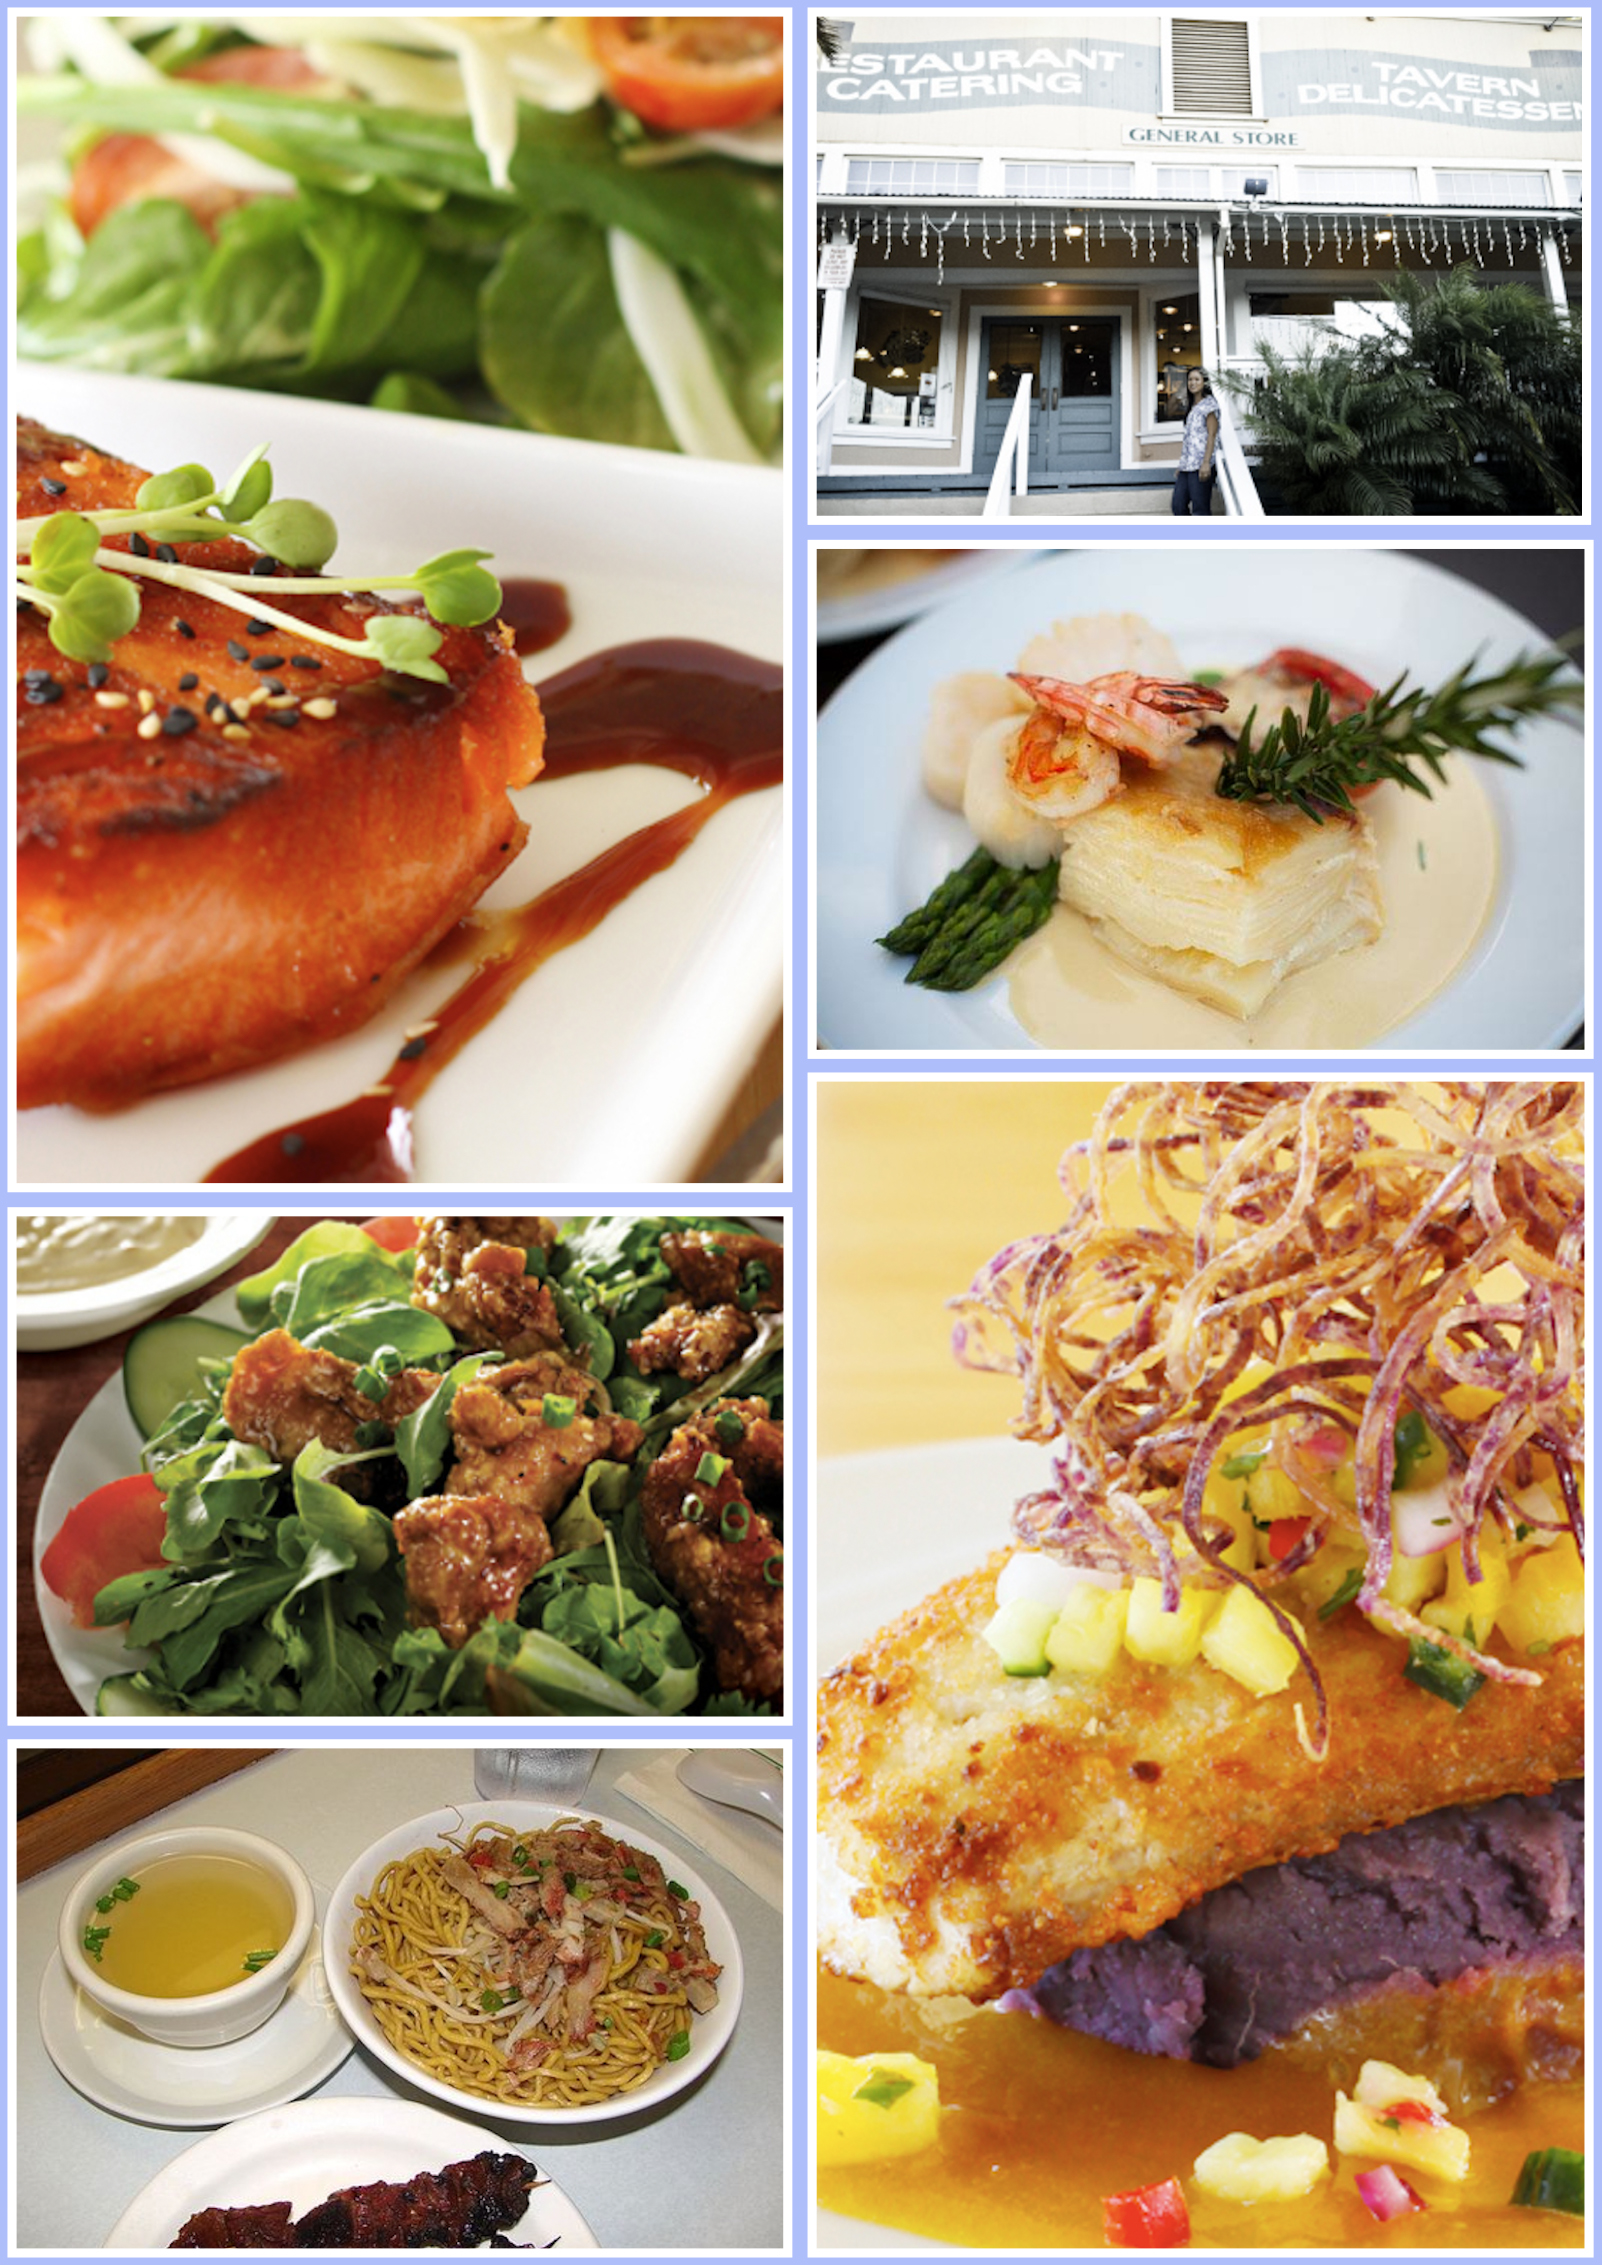 Maui hawaii my favorite restaurants the mainland for Asian cuisine maui